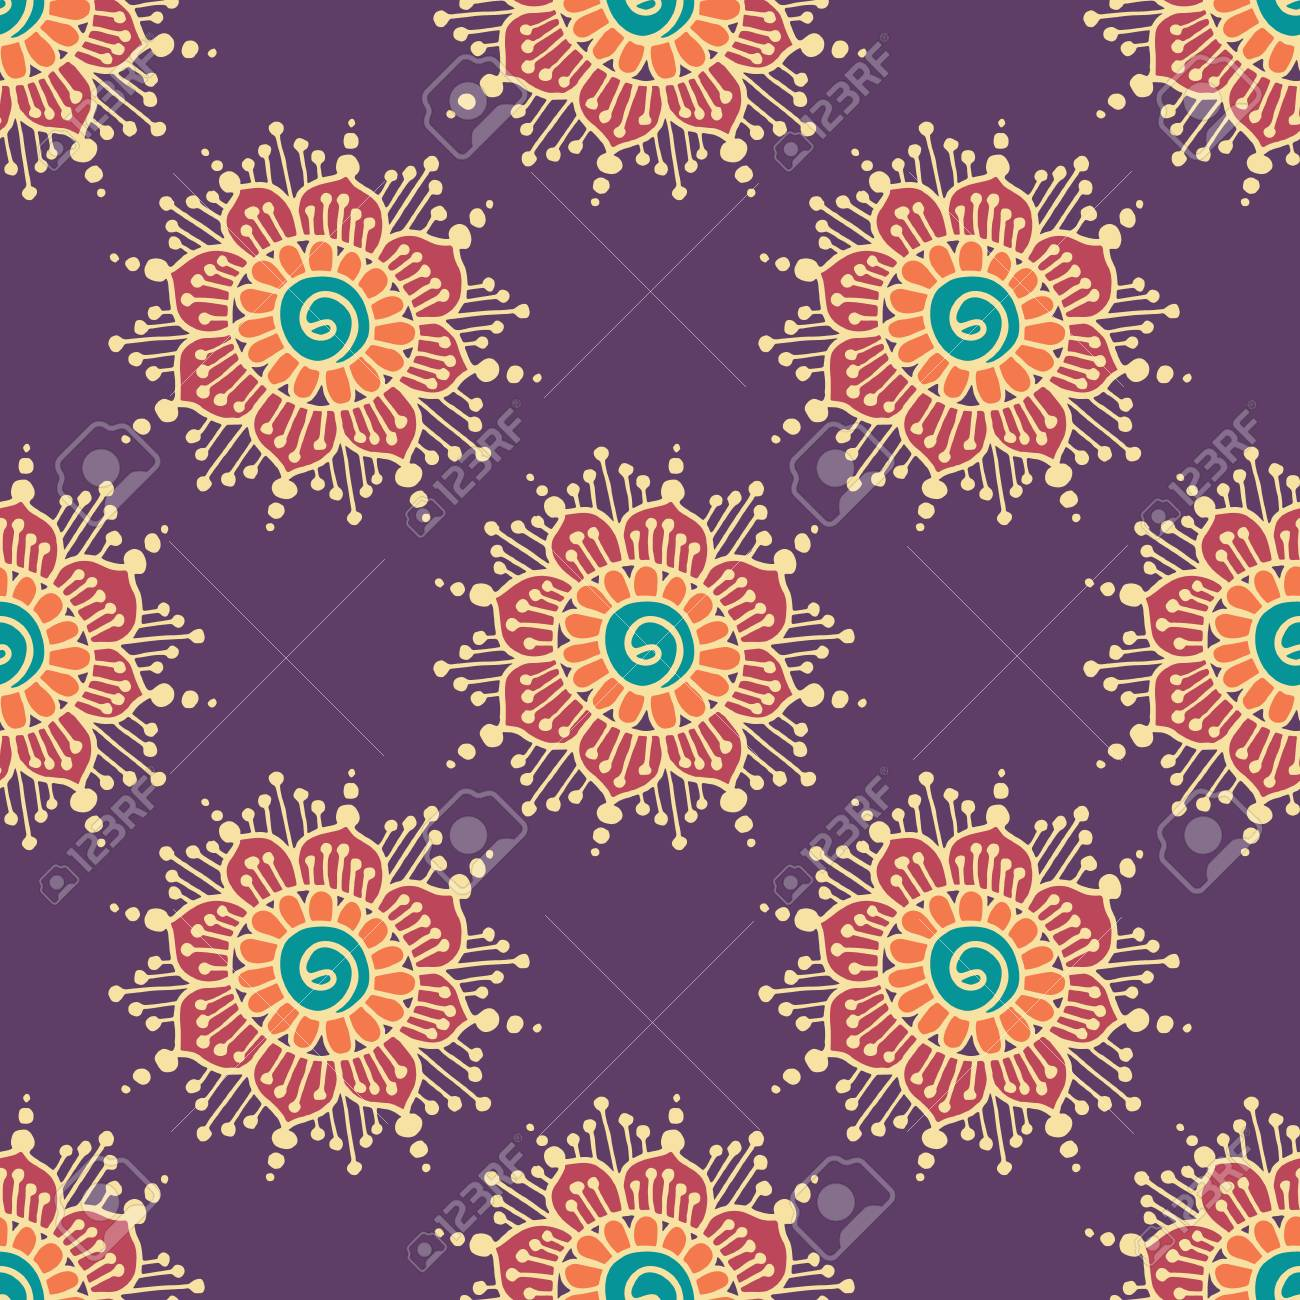 Indian style seamless pattern with ethnic flowers background indian style seamless pattern with ethnic flowers background for textile or wrapping paper stock mightylinksfo